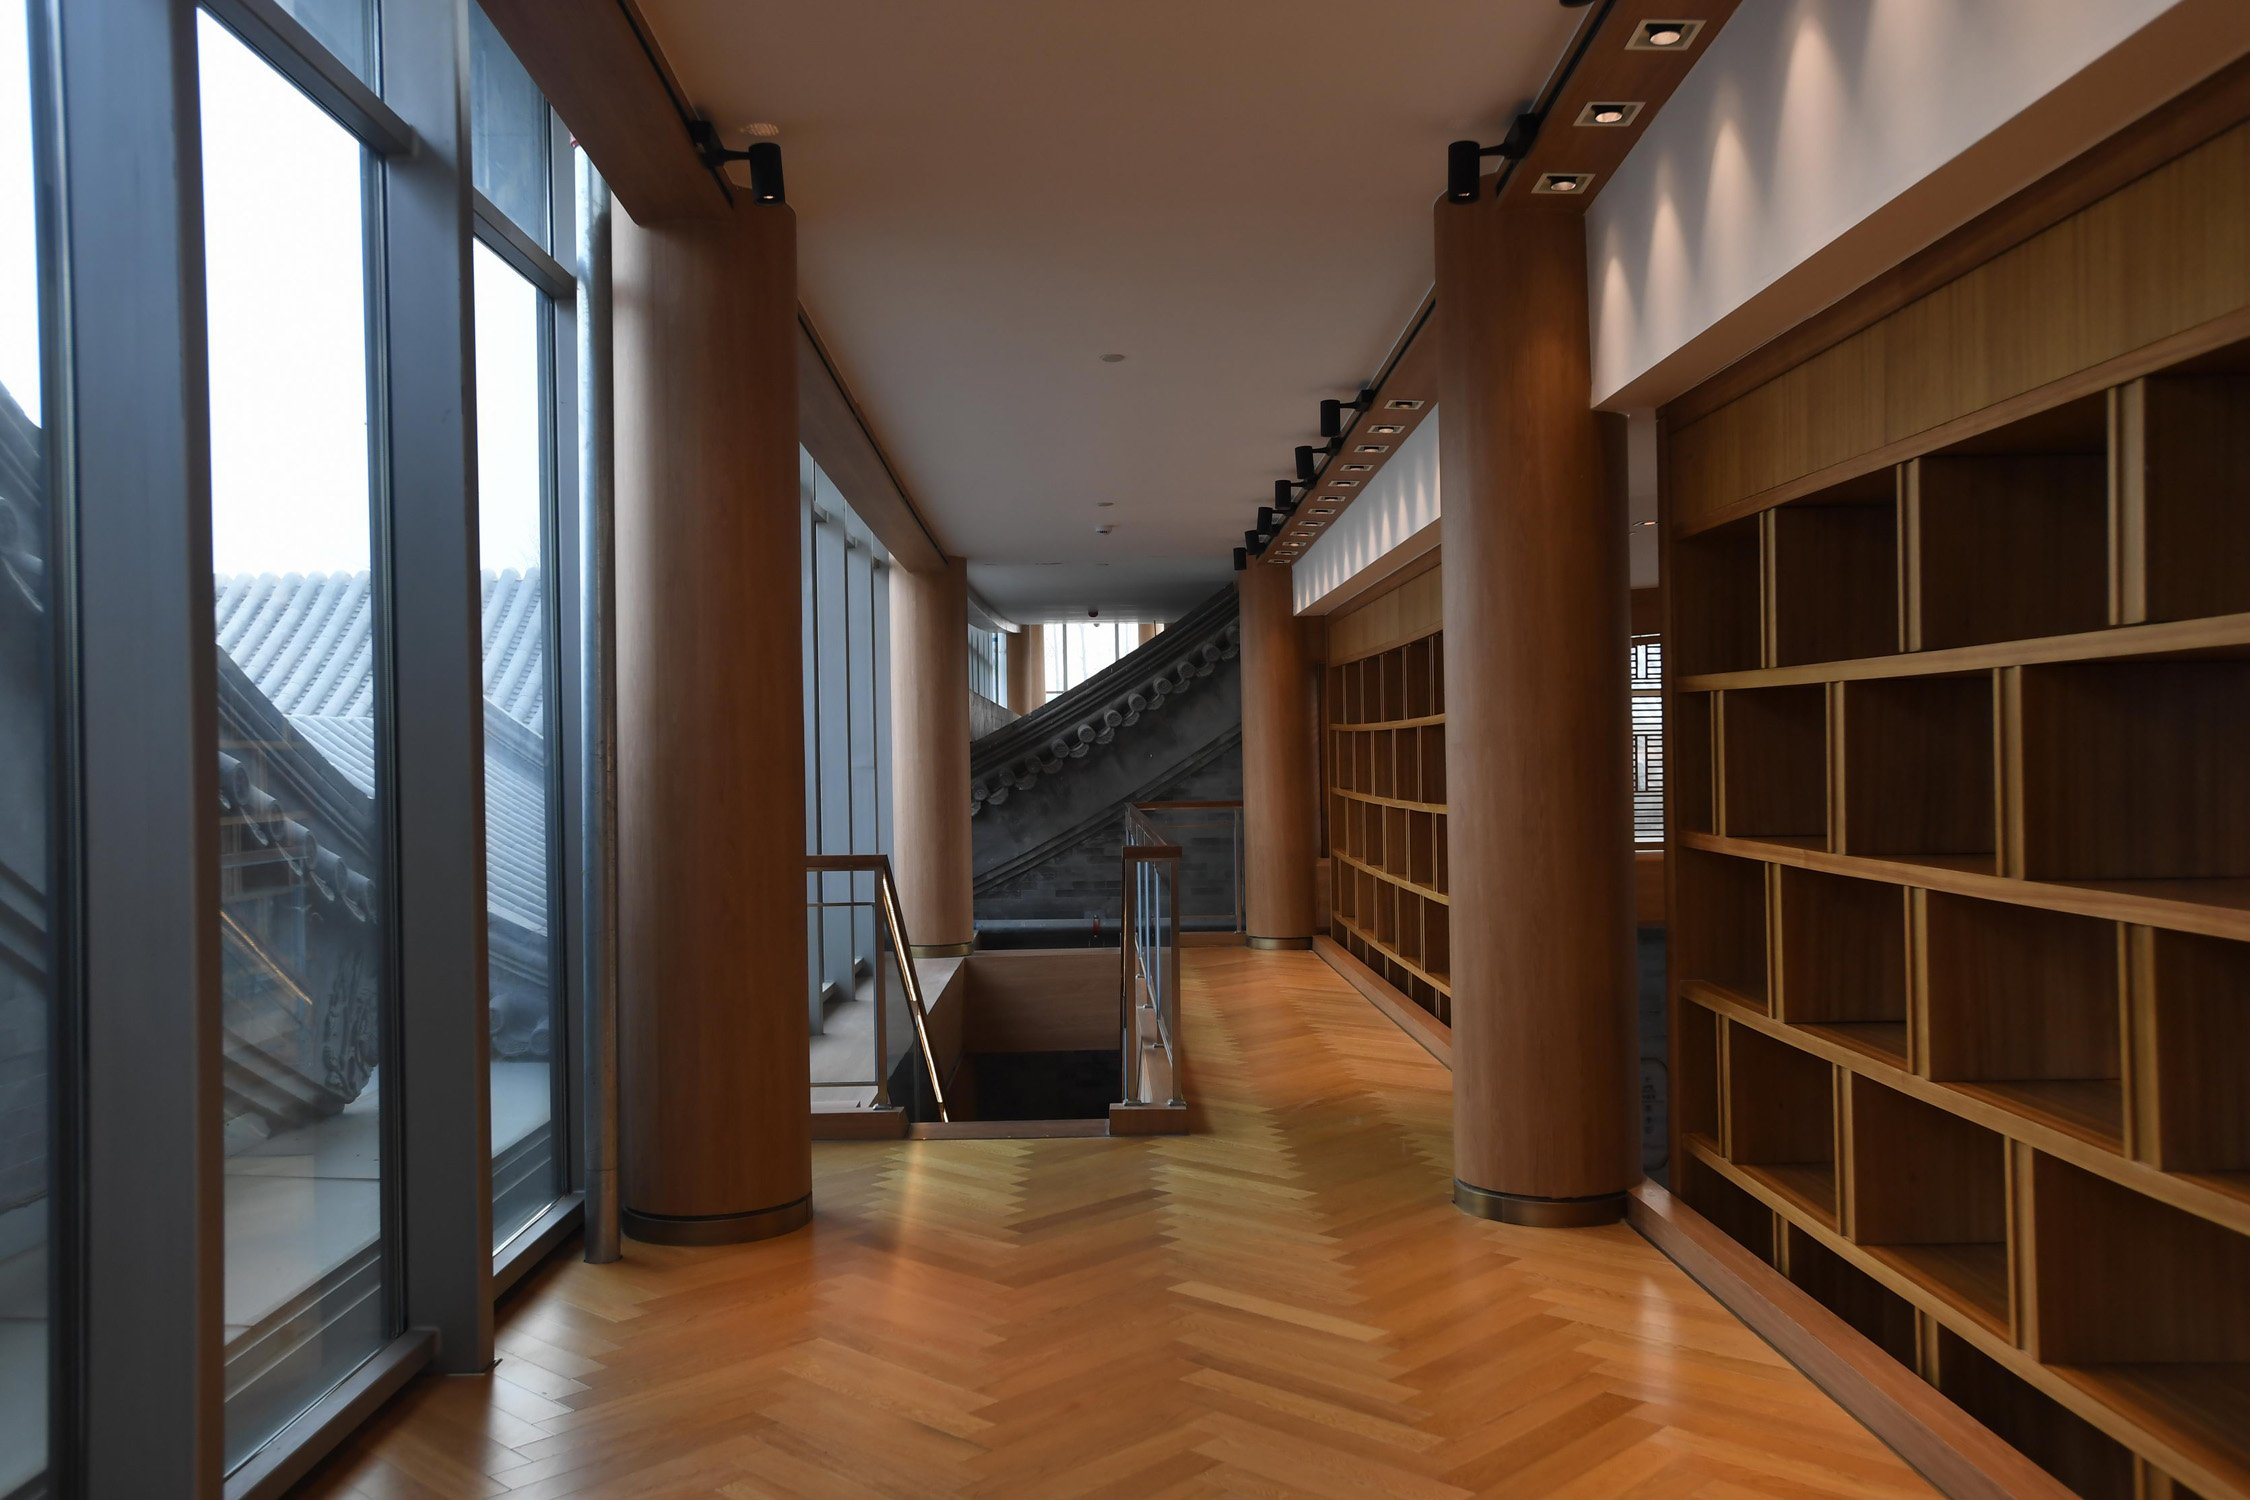 the upstair of the library